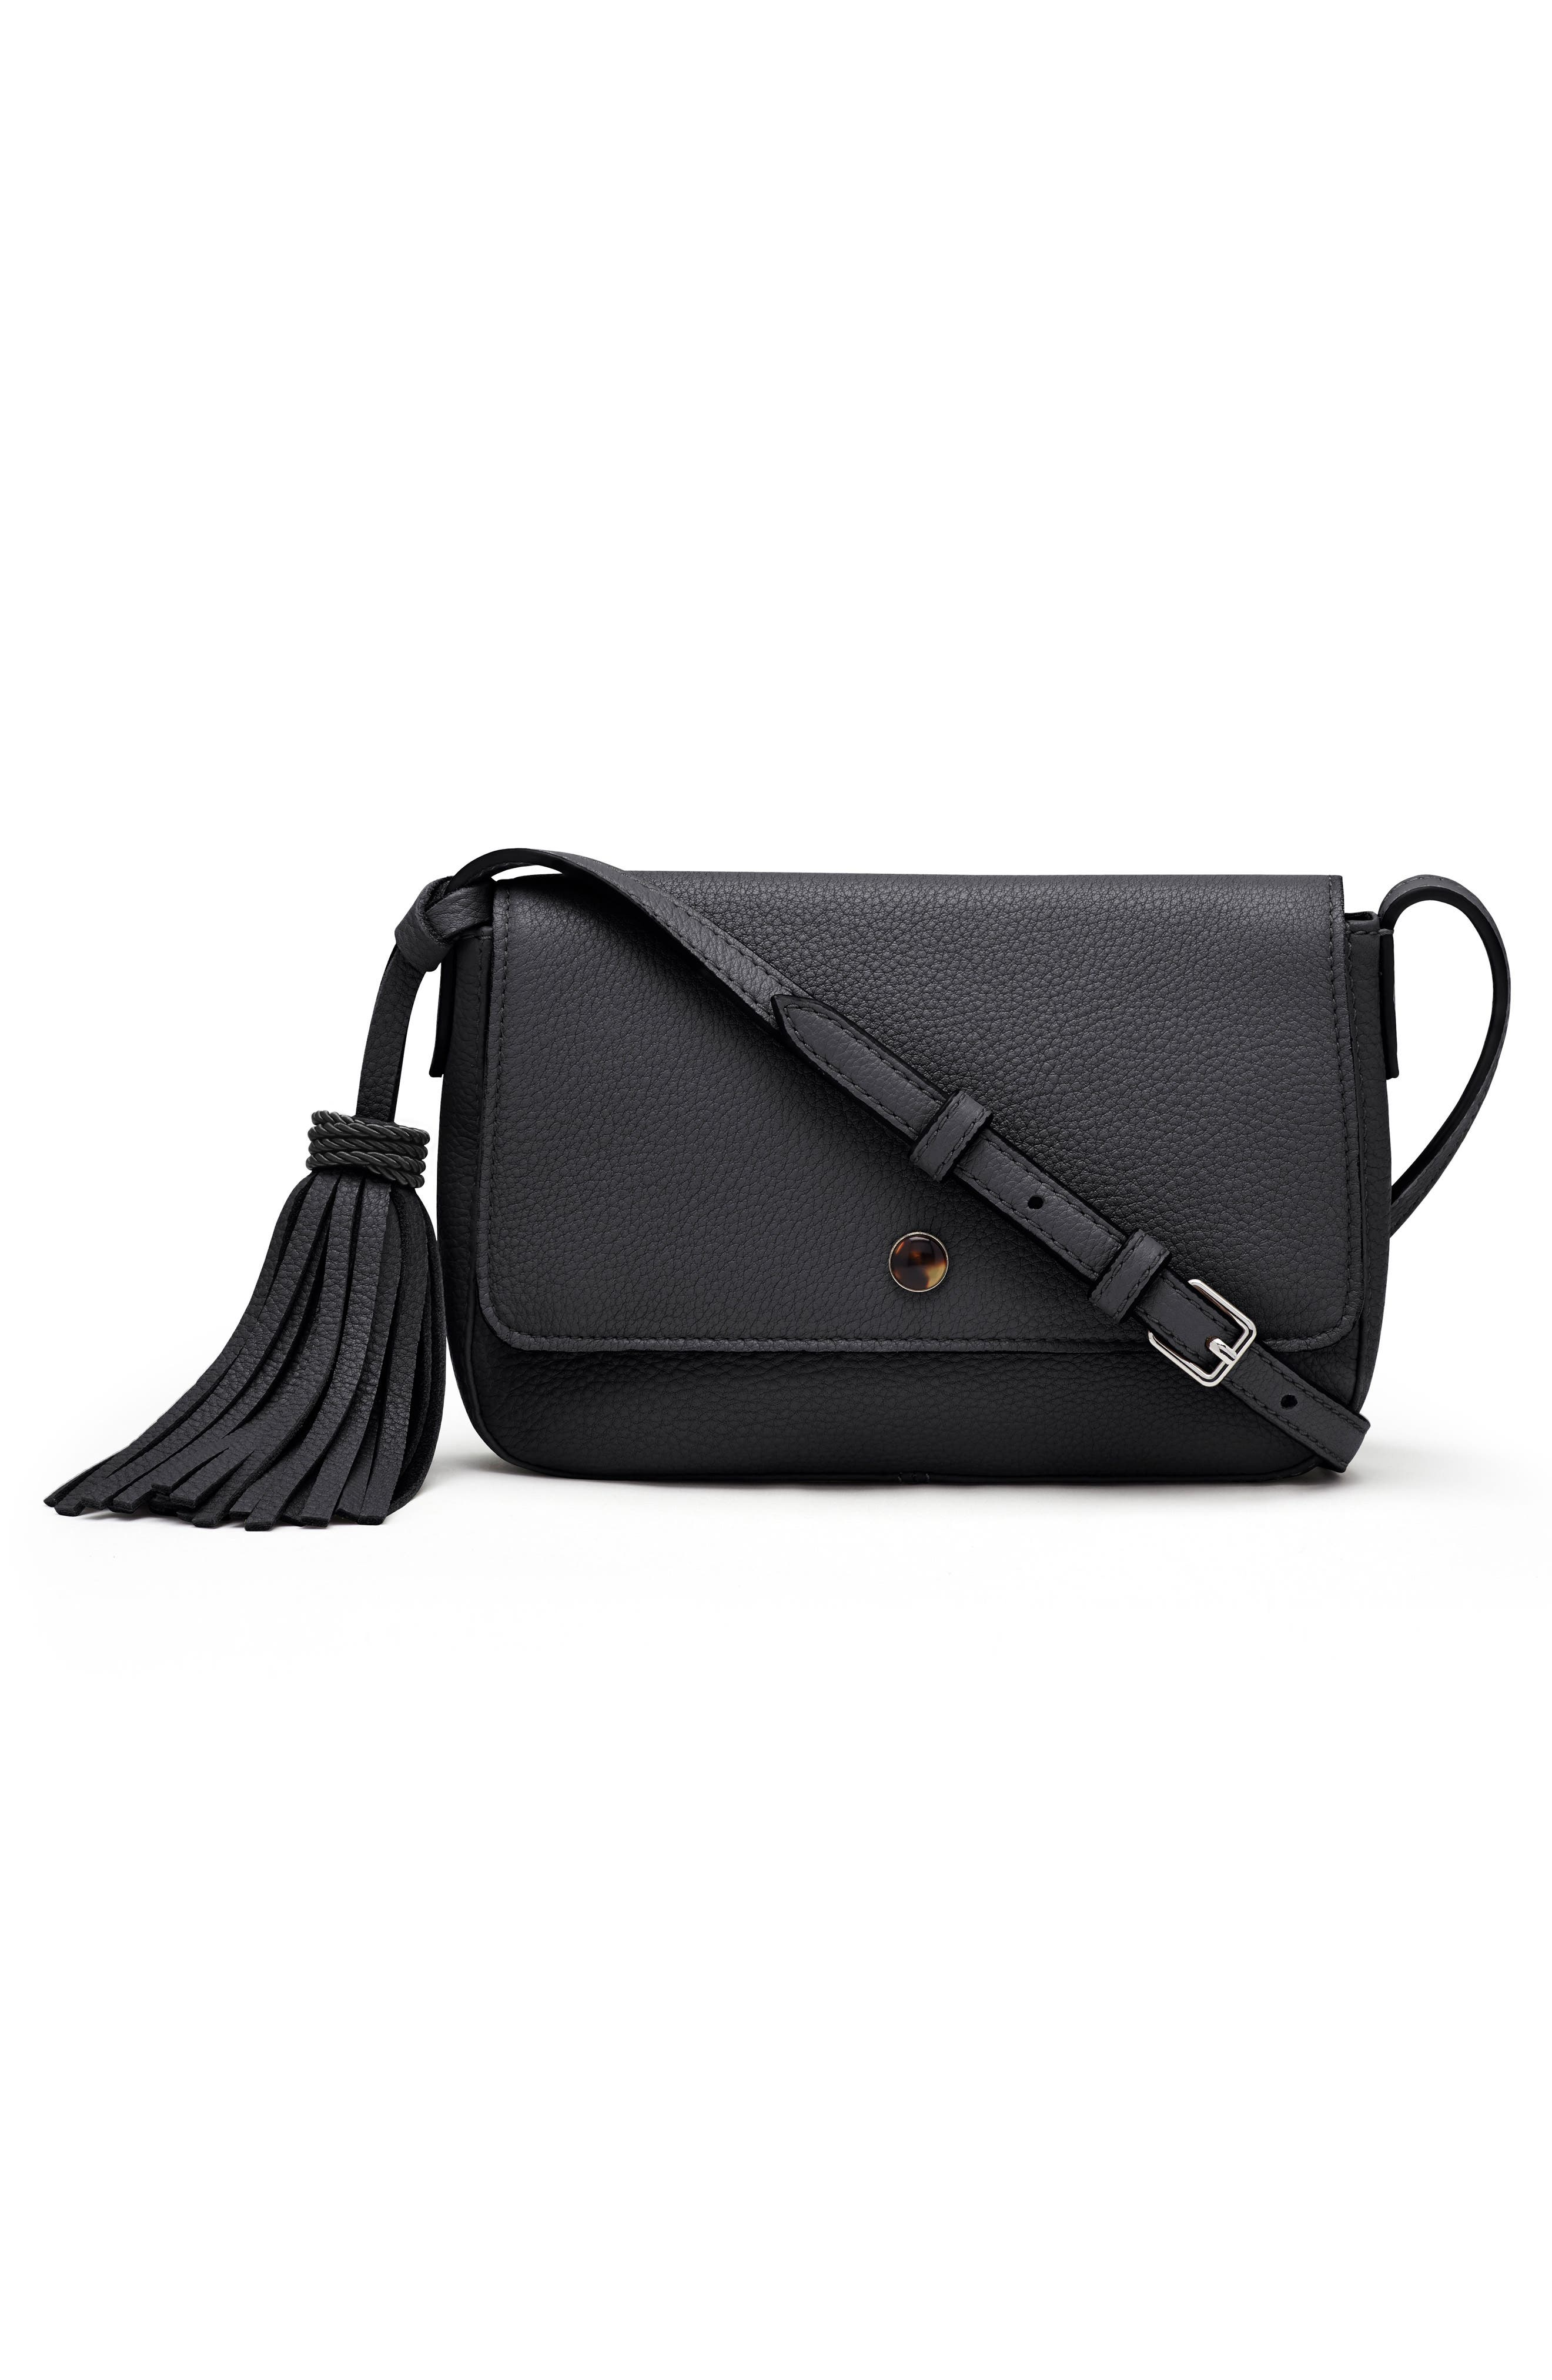 ELIZABETH AND JAMES, Micro Cynnie Leather Crossbody Bag, Main thumbnail 1, color, 001